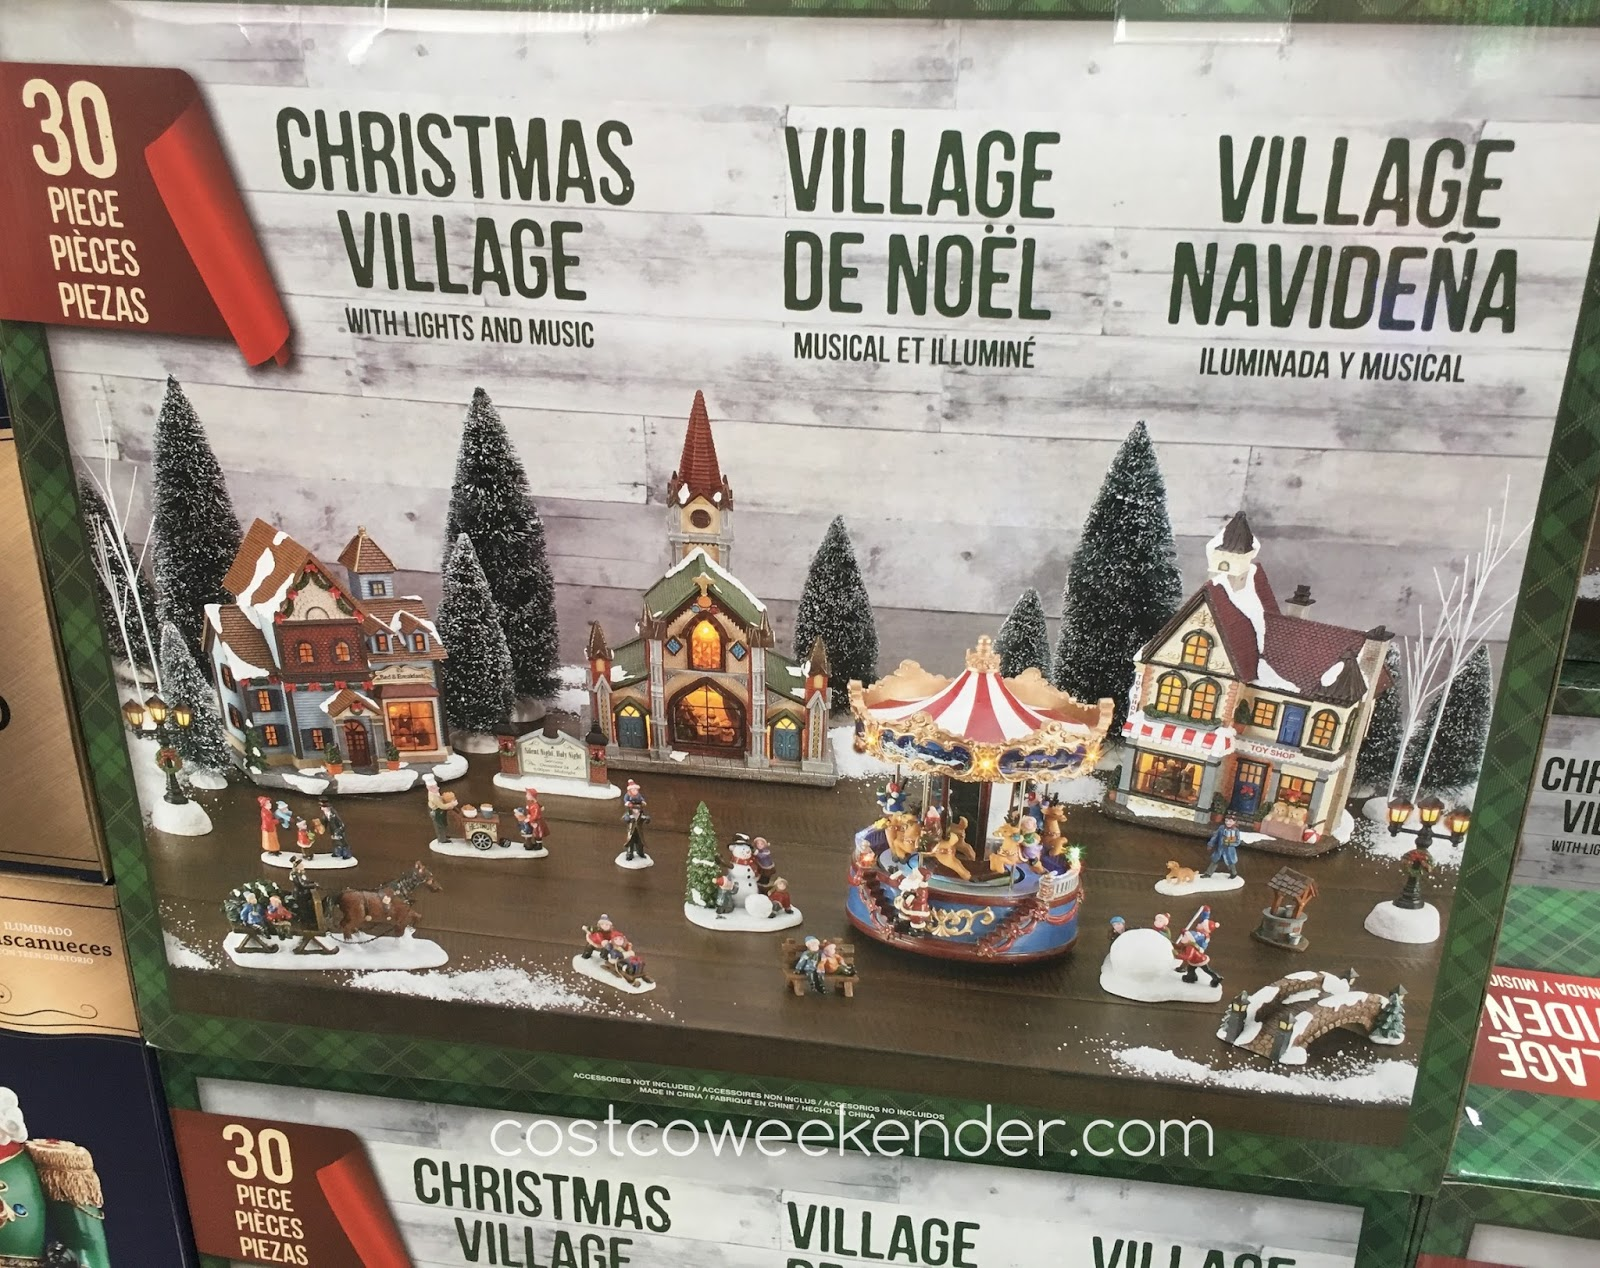 Make your home more festive with the Christmas Village with Lights and Music